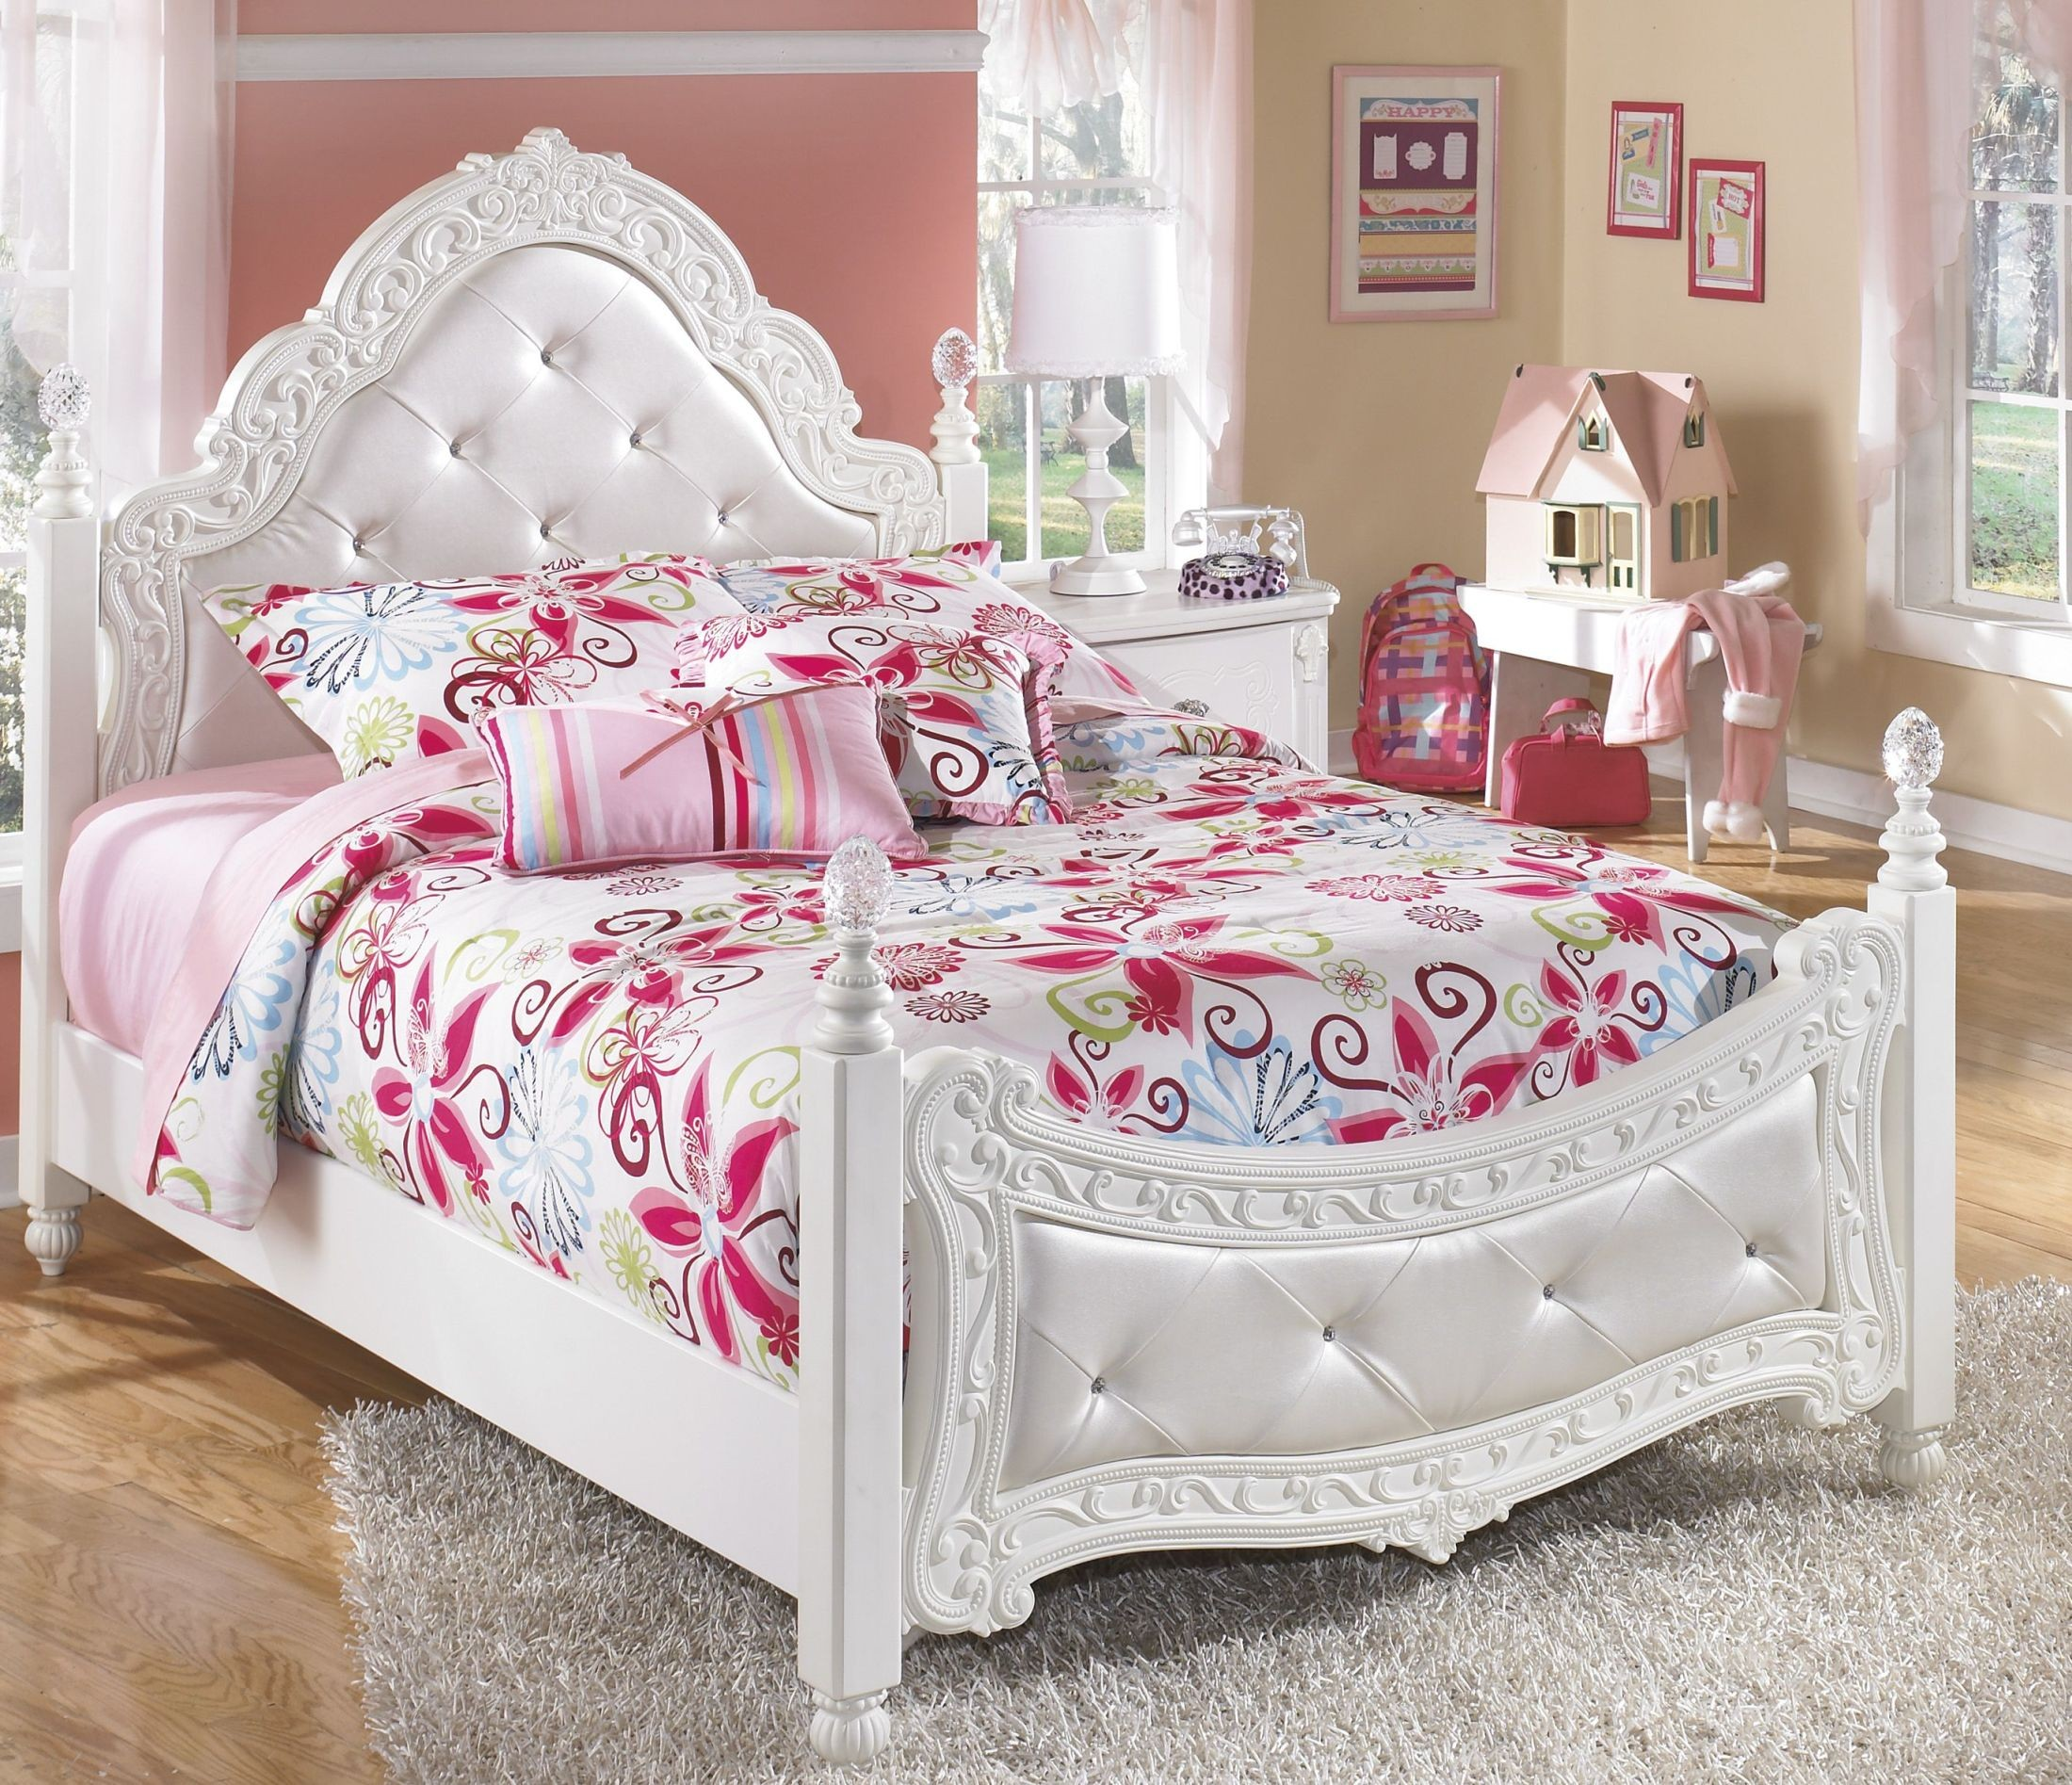 Bedroom sets coleman furniture - Exquisite Poster Underbed Storage Bedroom Set